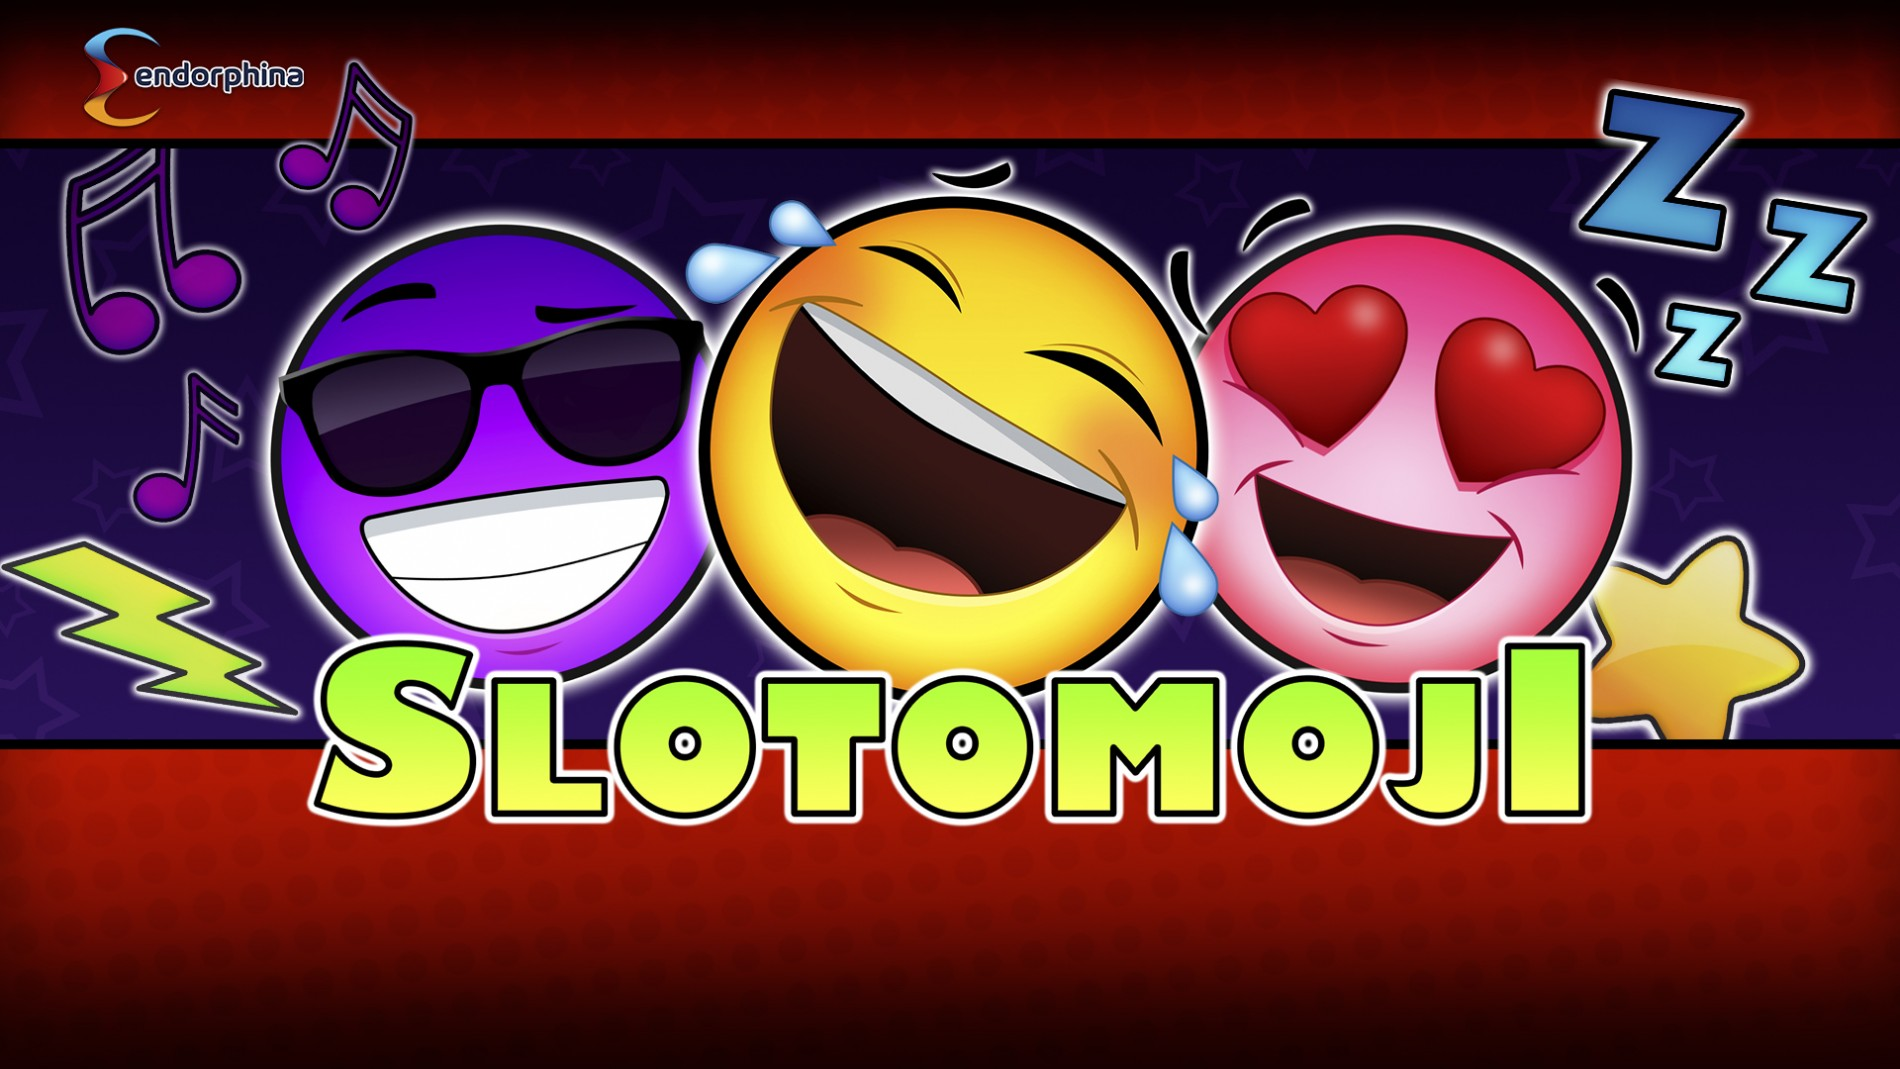 TOP EMOJI SLOTS OF 2020 | Play SLOTOMOJI SLOT now!